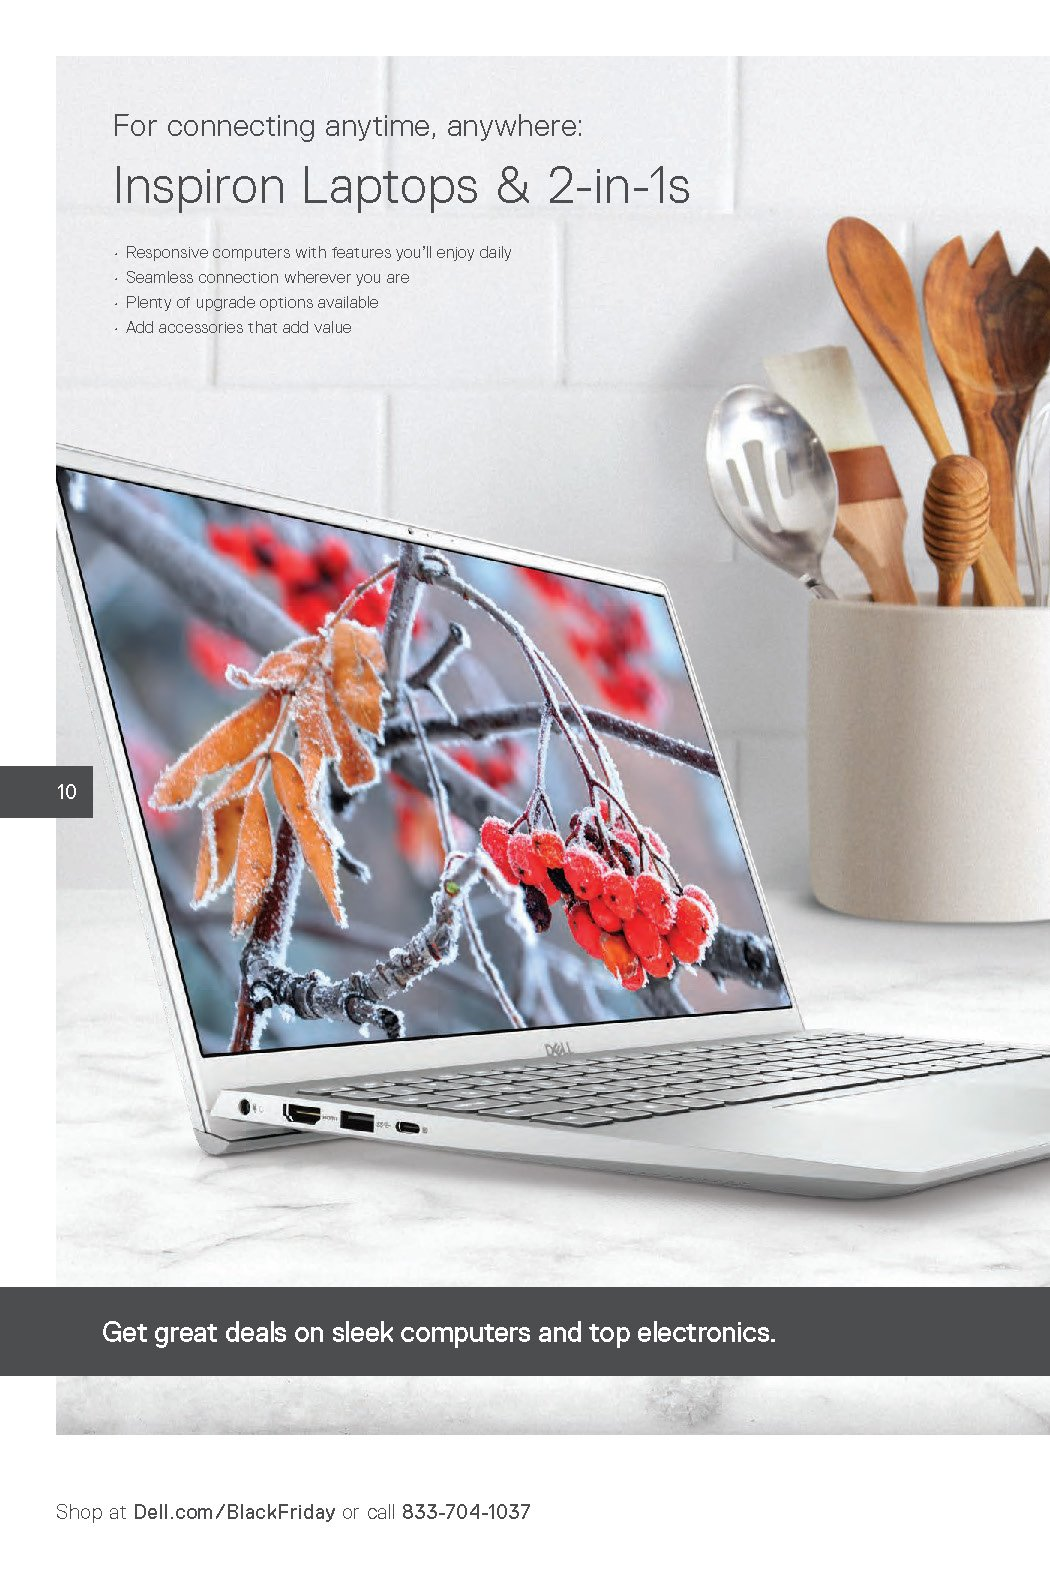 Dell Black Friday 2020 Page 10